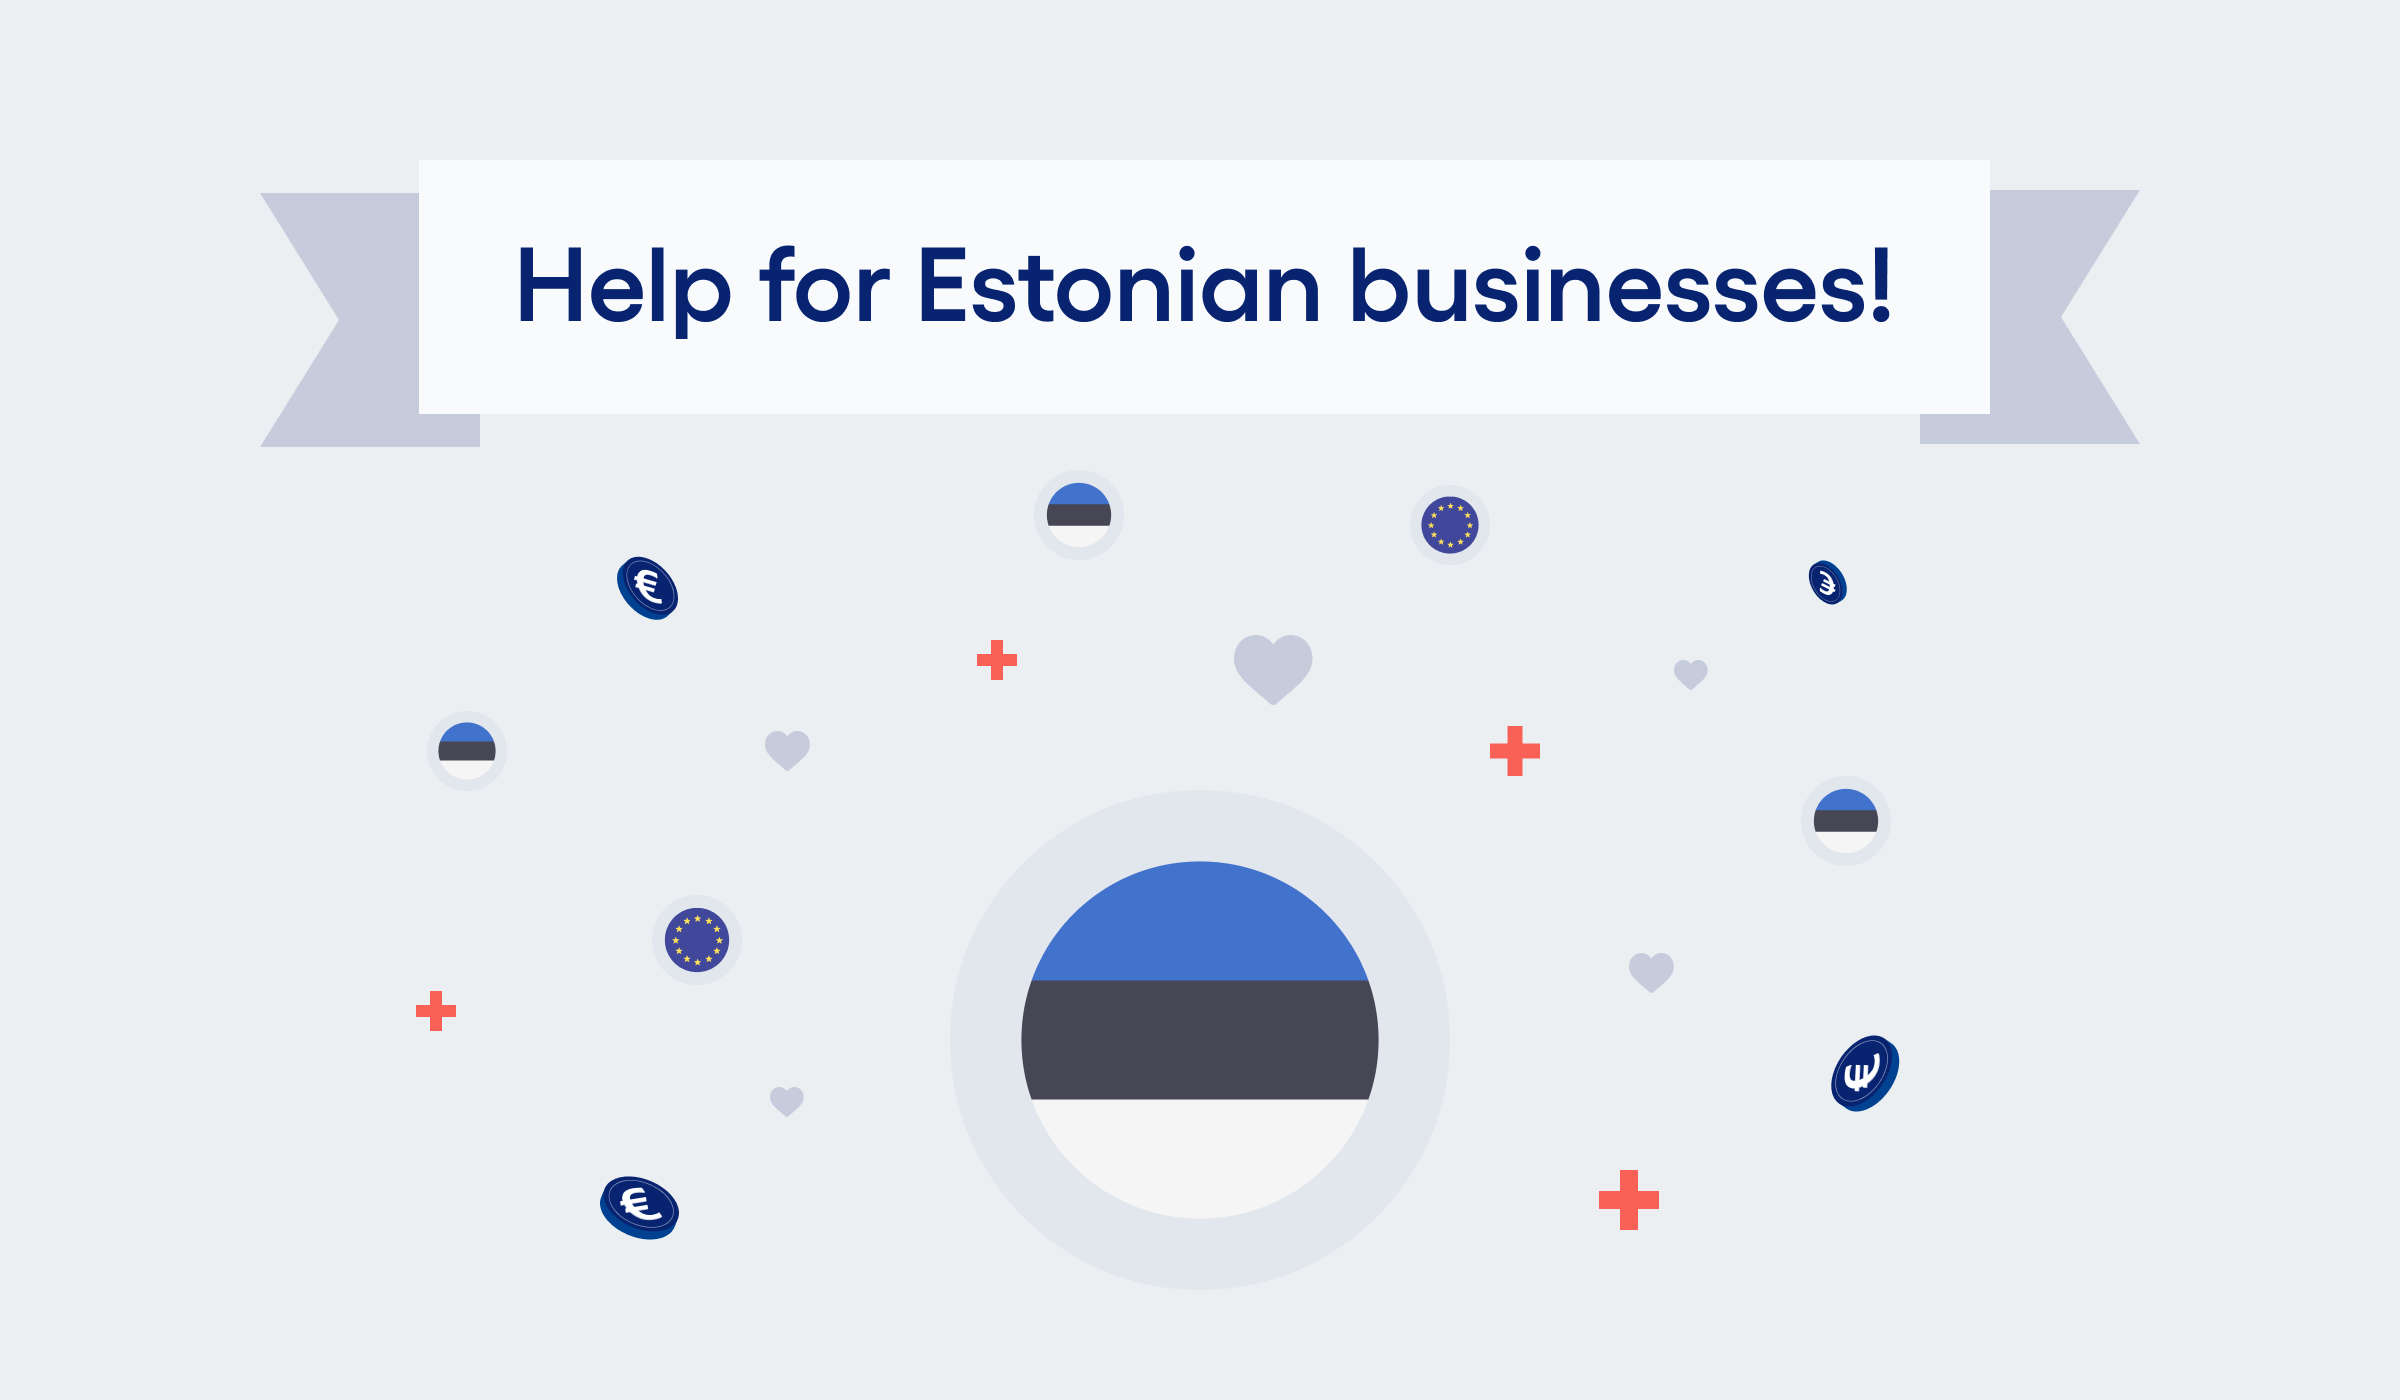 COVID-19 help for small businesses in Estonia